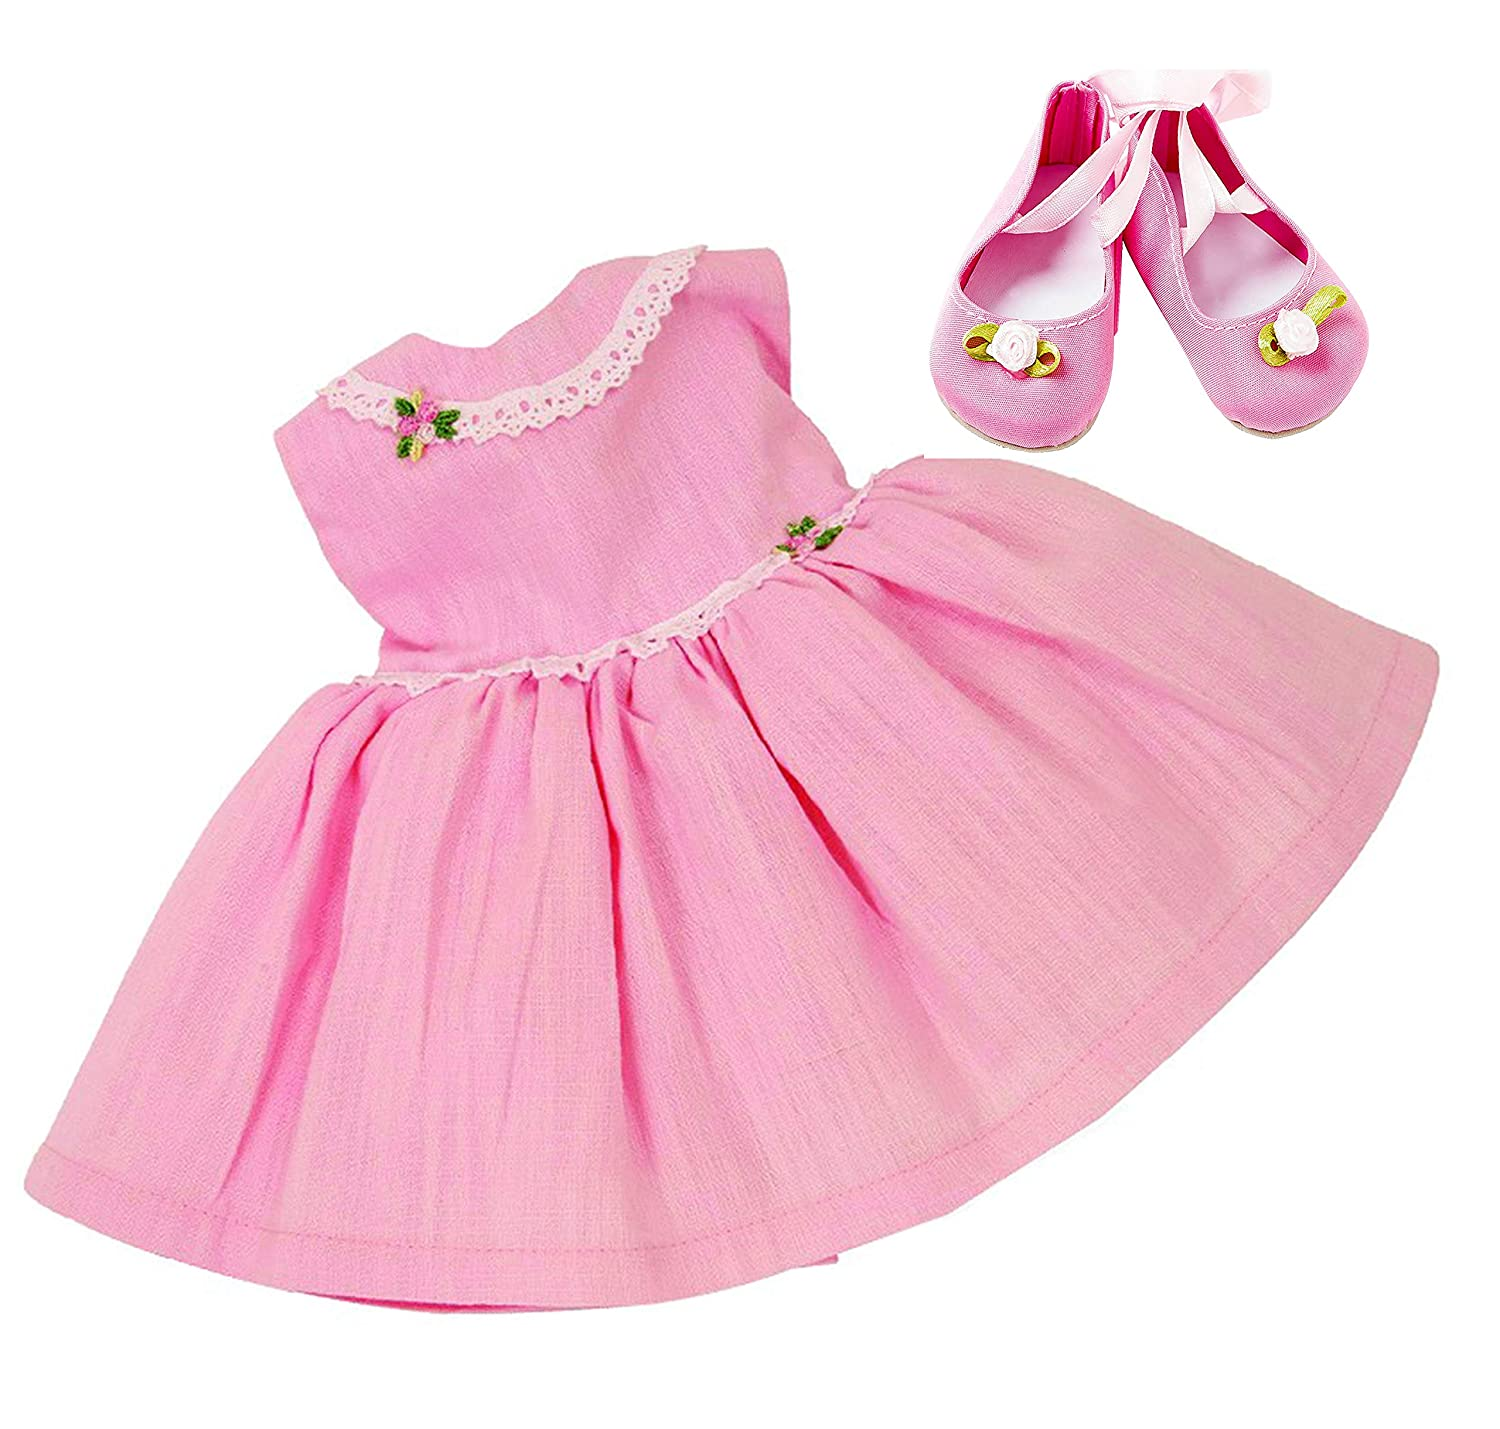 1e138083377a Frilly Lily PINK PARTY DRESS AND SHOES SET FOR LUVABELLA DOLL FROM [DOLL  NOT INCLUDED]: Amazon.co.uk: Toys & Games